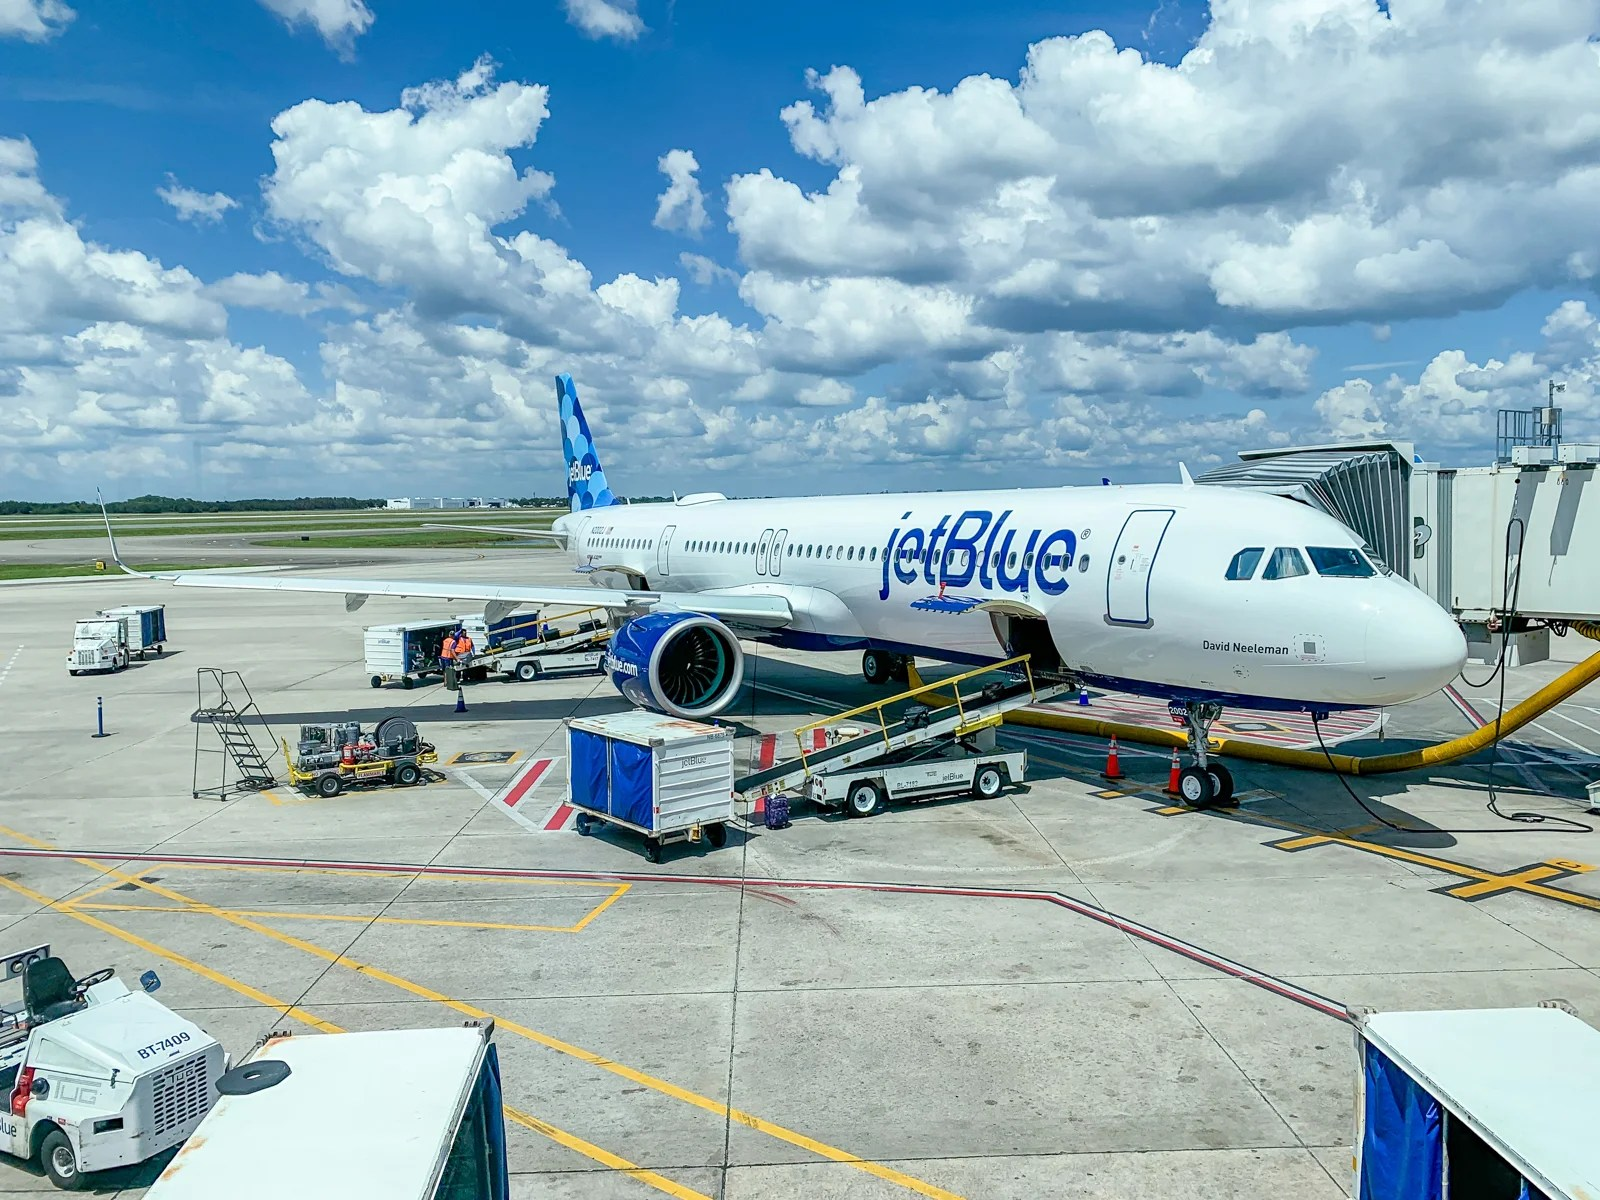 JetBlue flash sale: Flights starting at $44 one-way or $87 round-trip